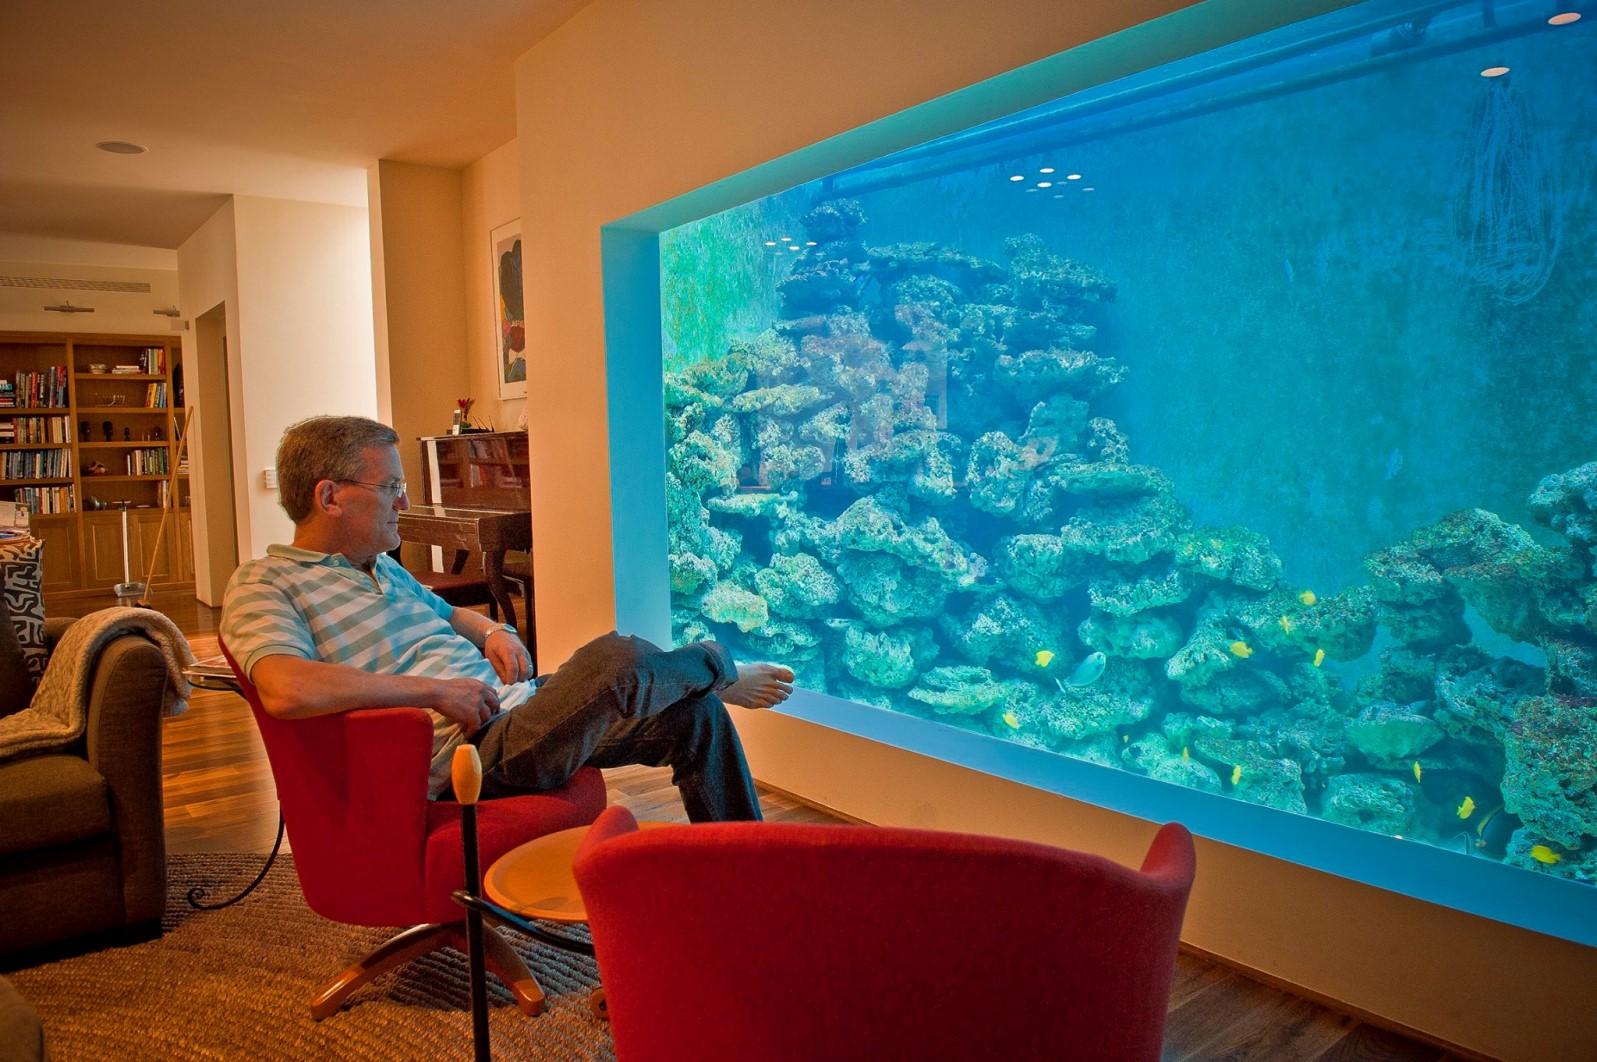 Favorit The Israeli who swims in his living room   ISRAEL21c QF04